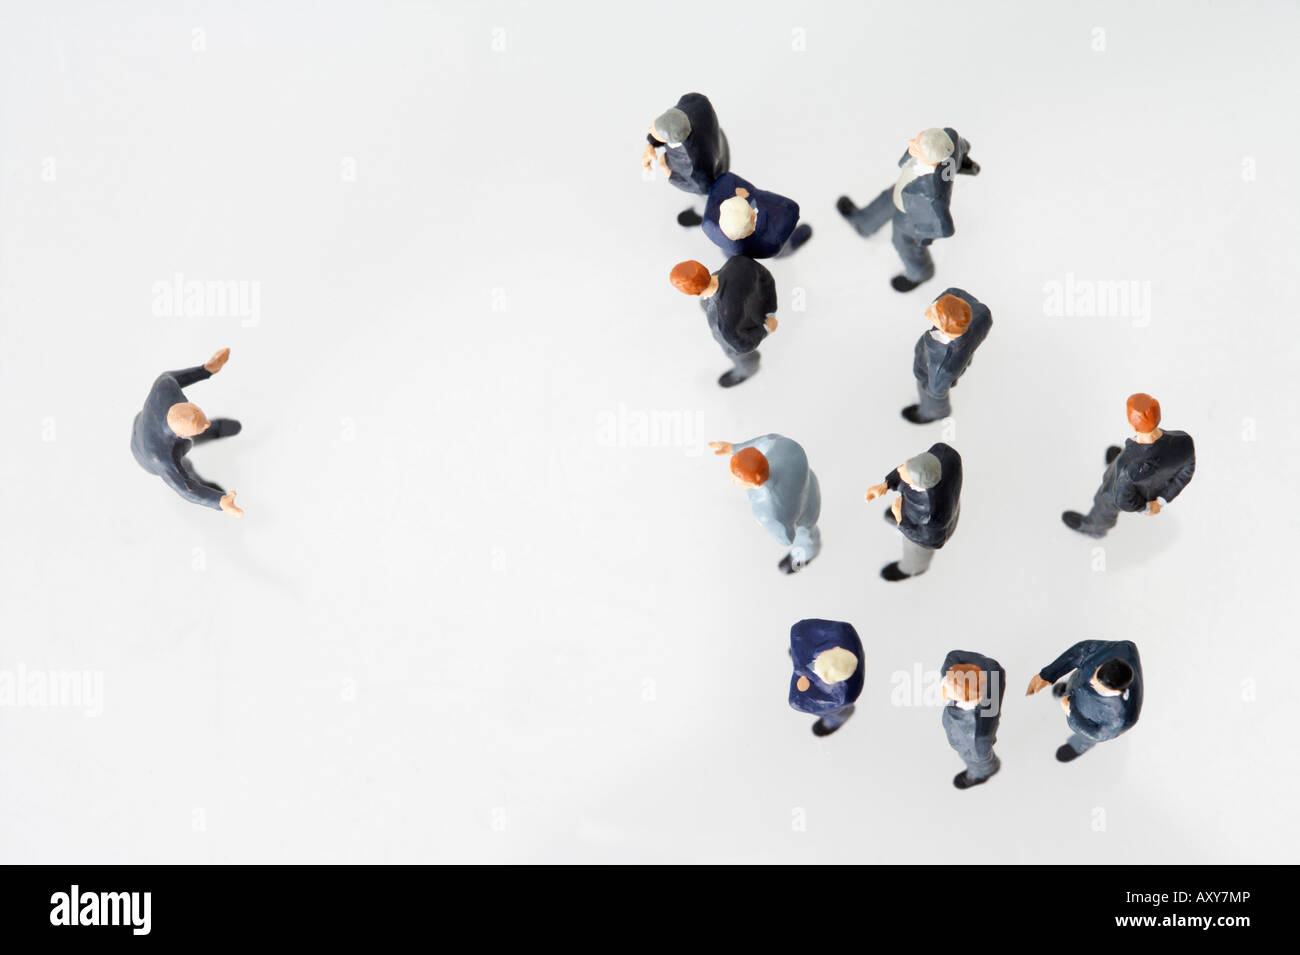 Group of businessmen figurines and one businessman figurine standing vis-à-vis - Stock Image